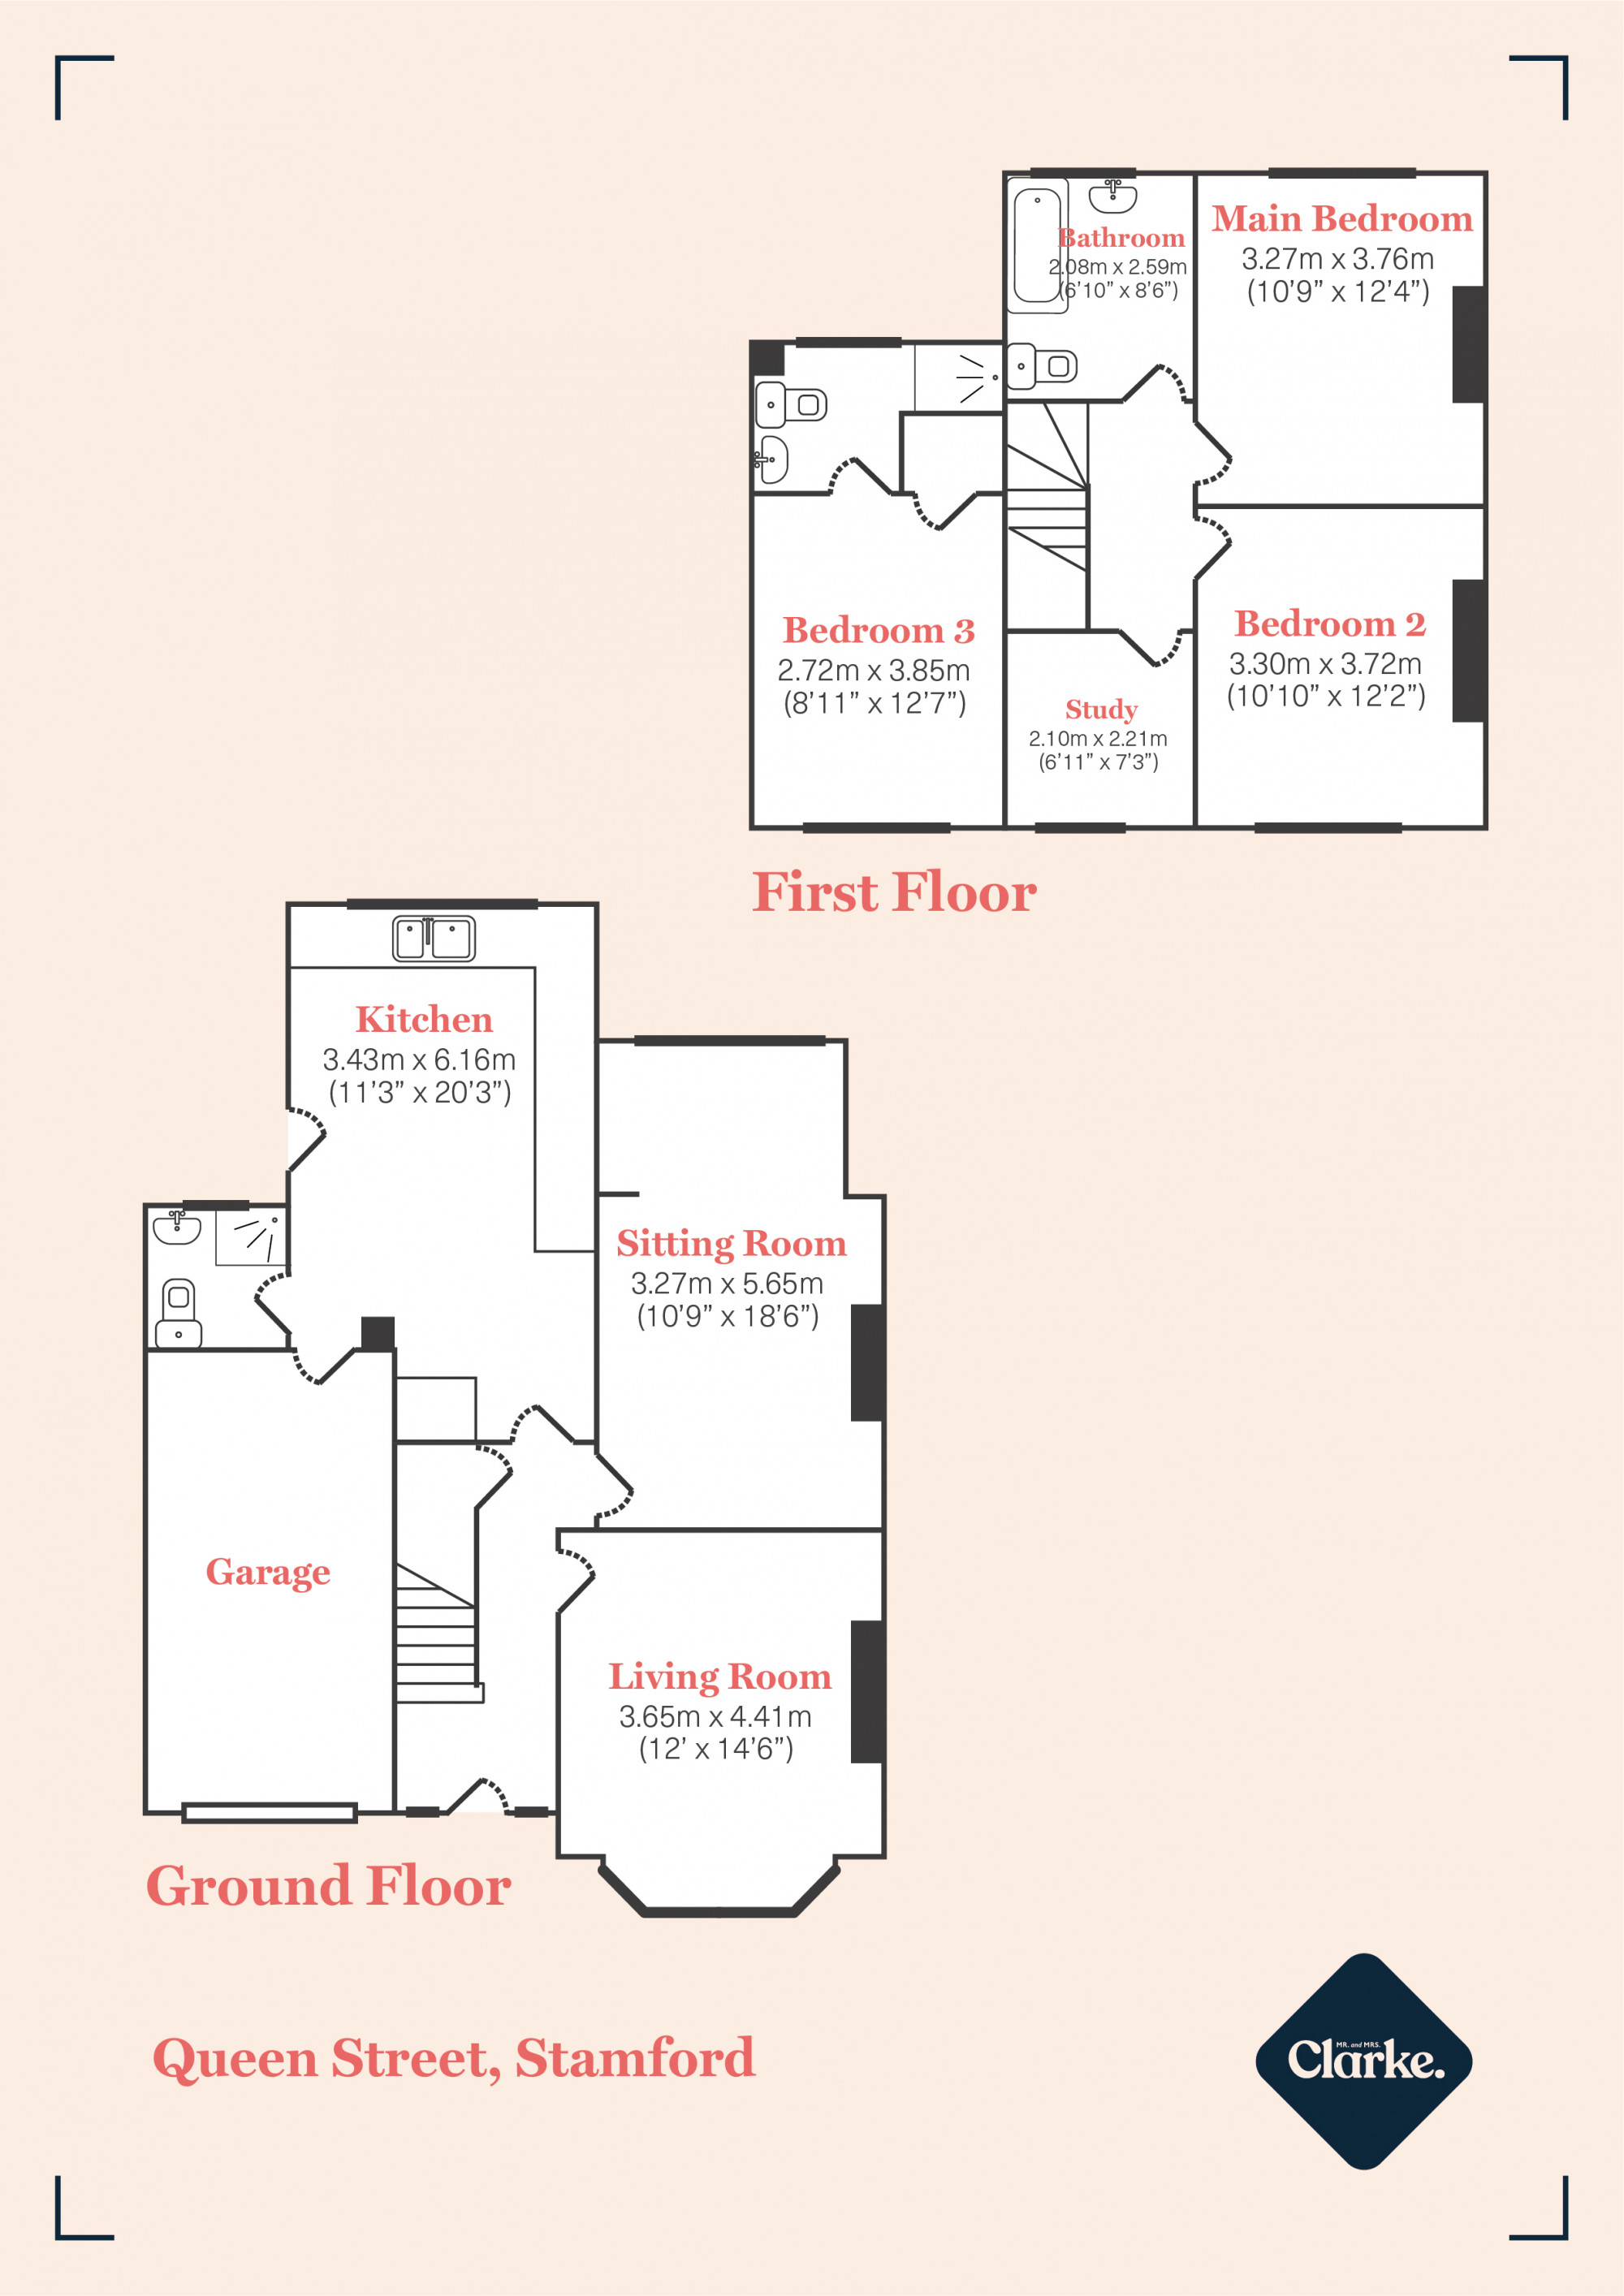 Queen Street, Stamford. Floorplan.